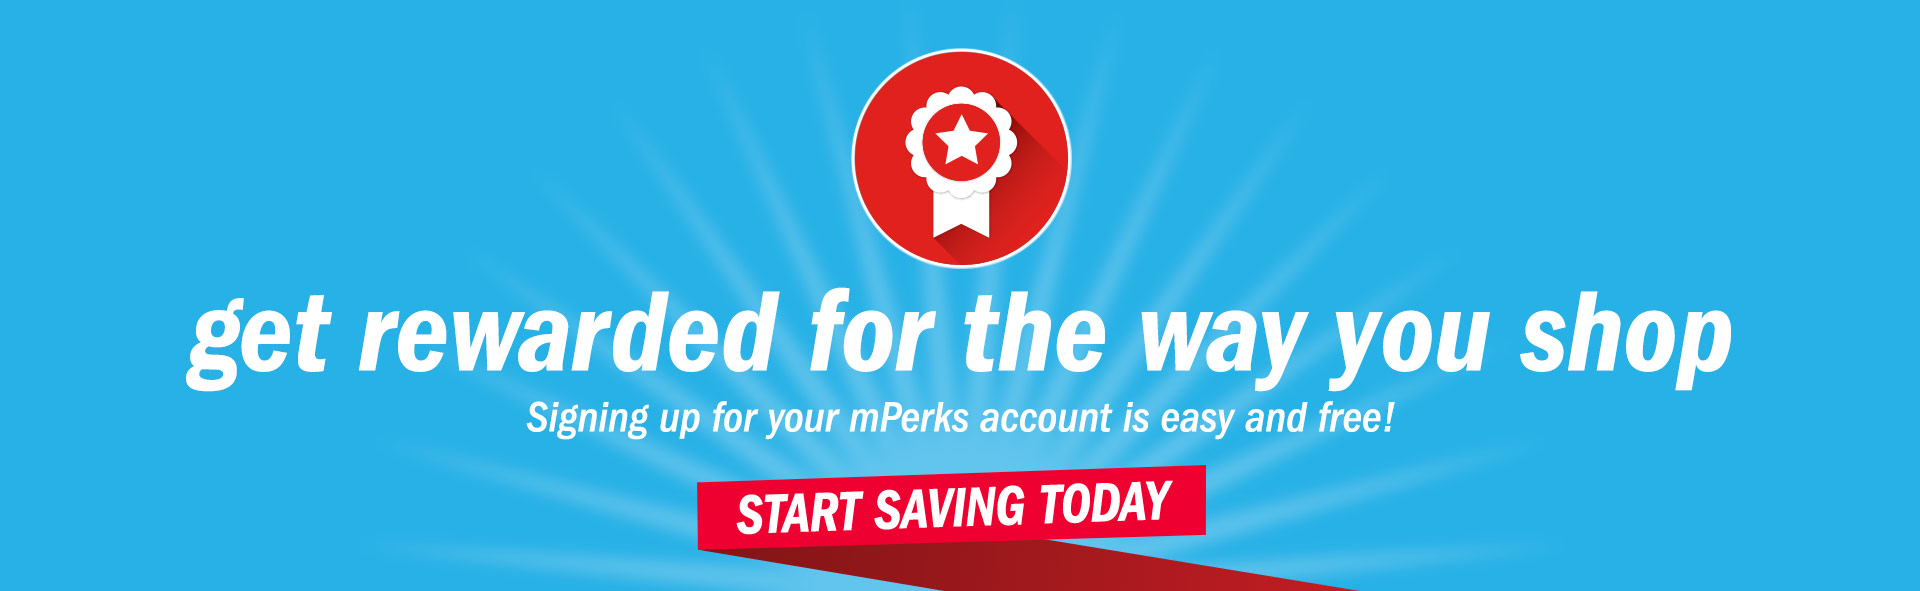 meijer mperks rewards - get rewarded for the way you shop.